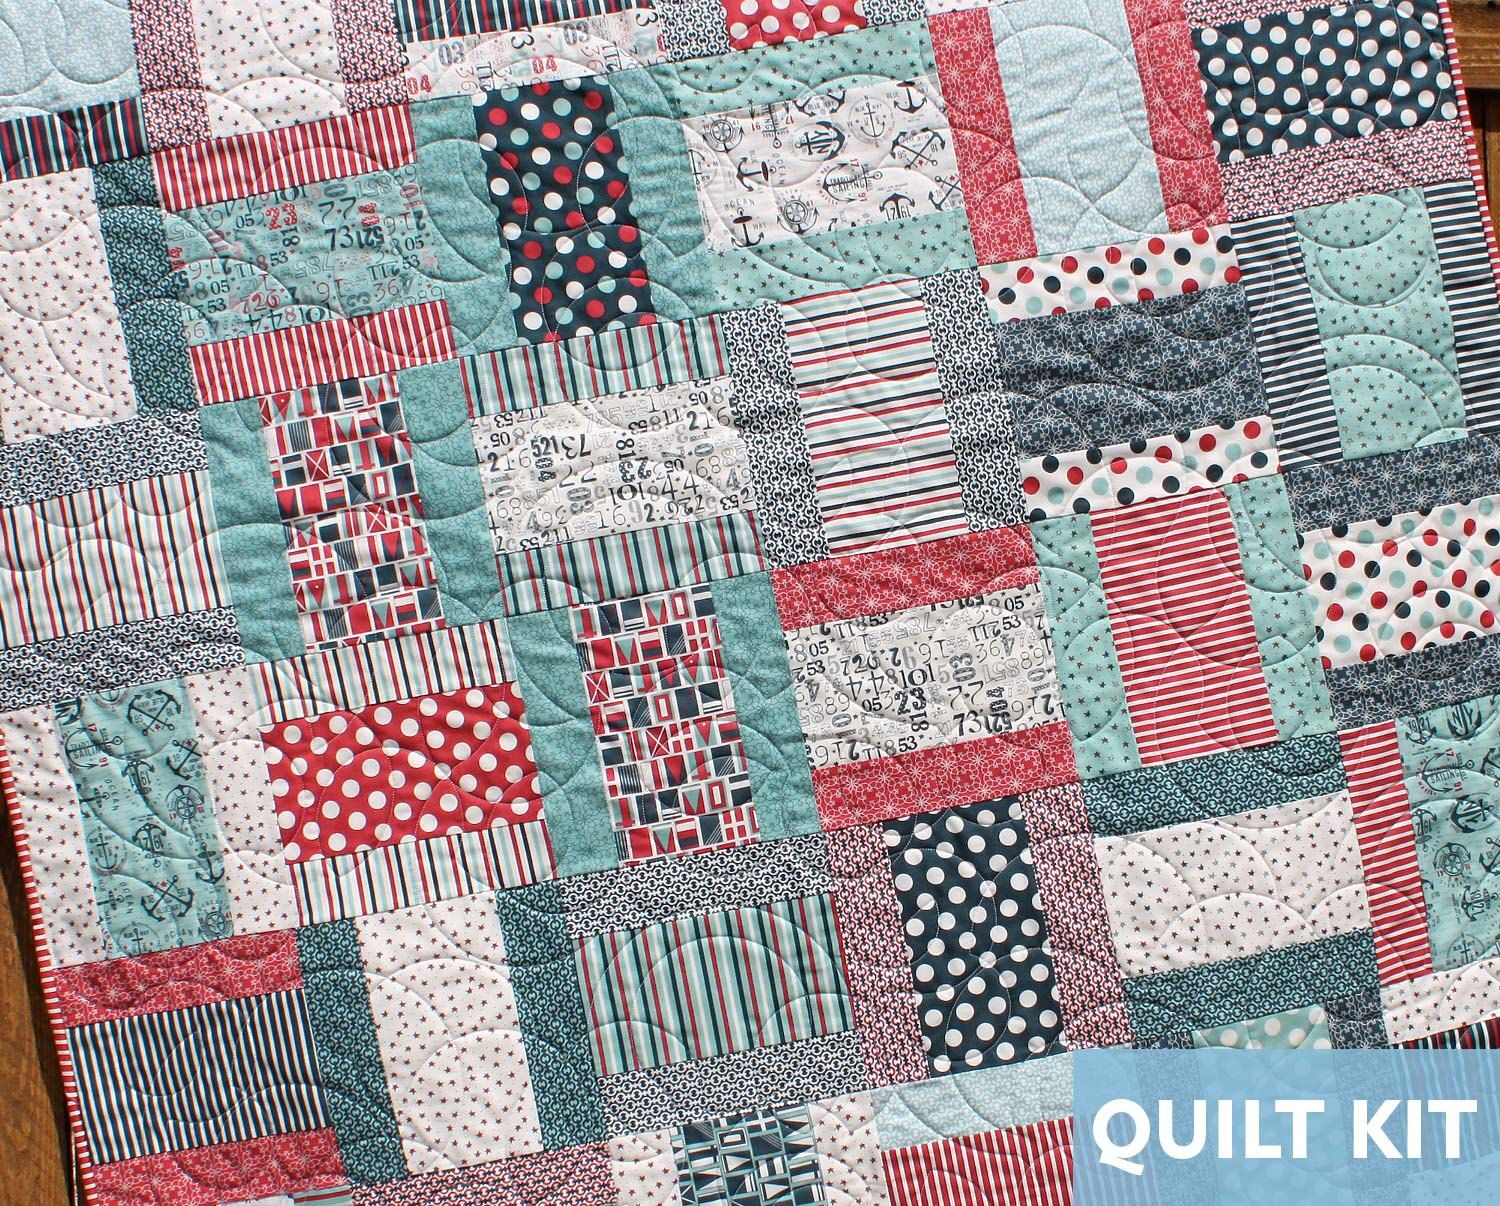 Nautical Quilt Kit, Lap Quilt Kit, The Boat House, Layer Cake Kit ... : quilt kits for beginners - Adamdwight.com